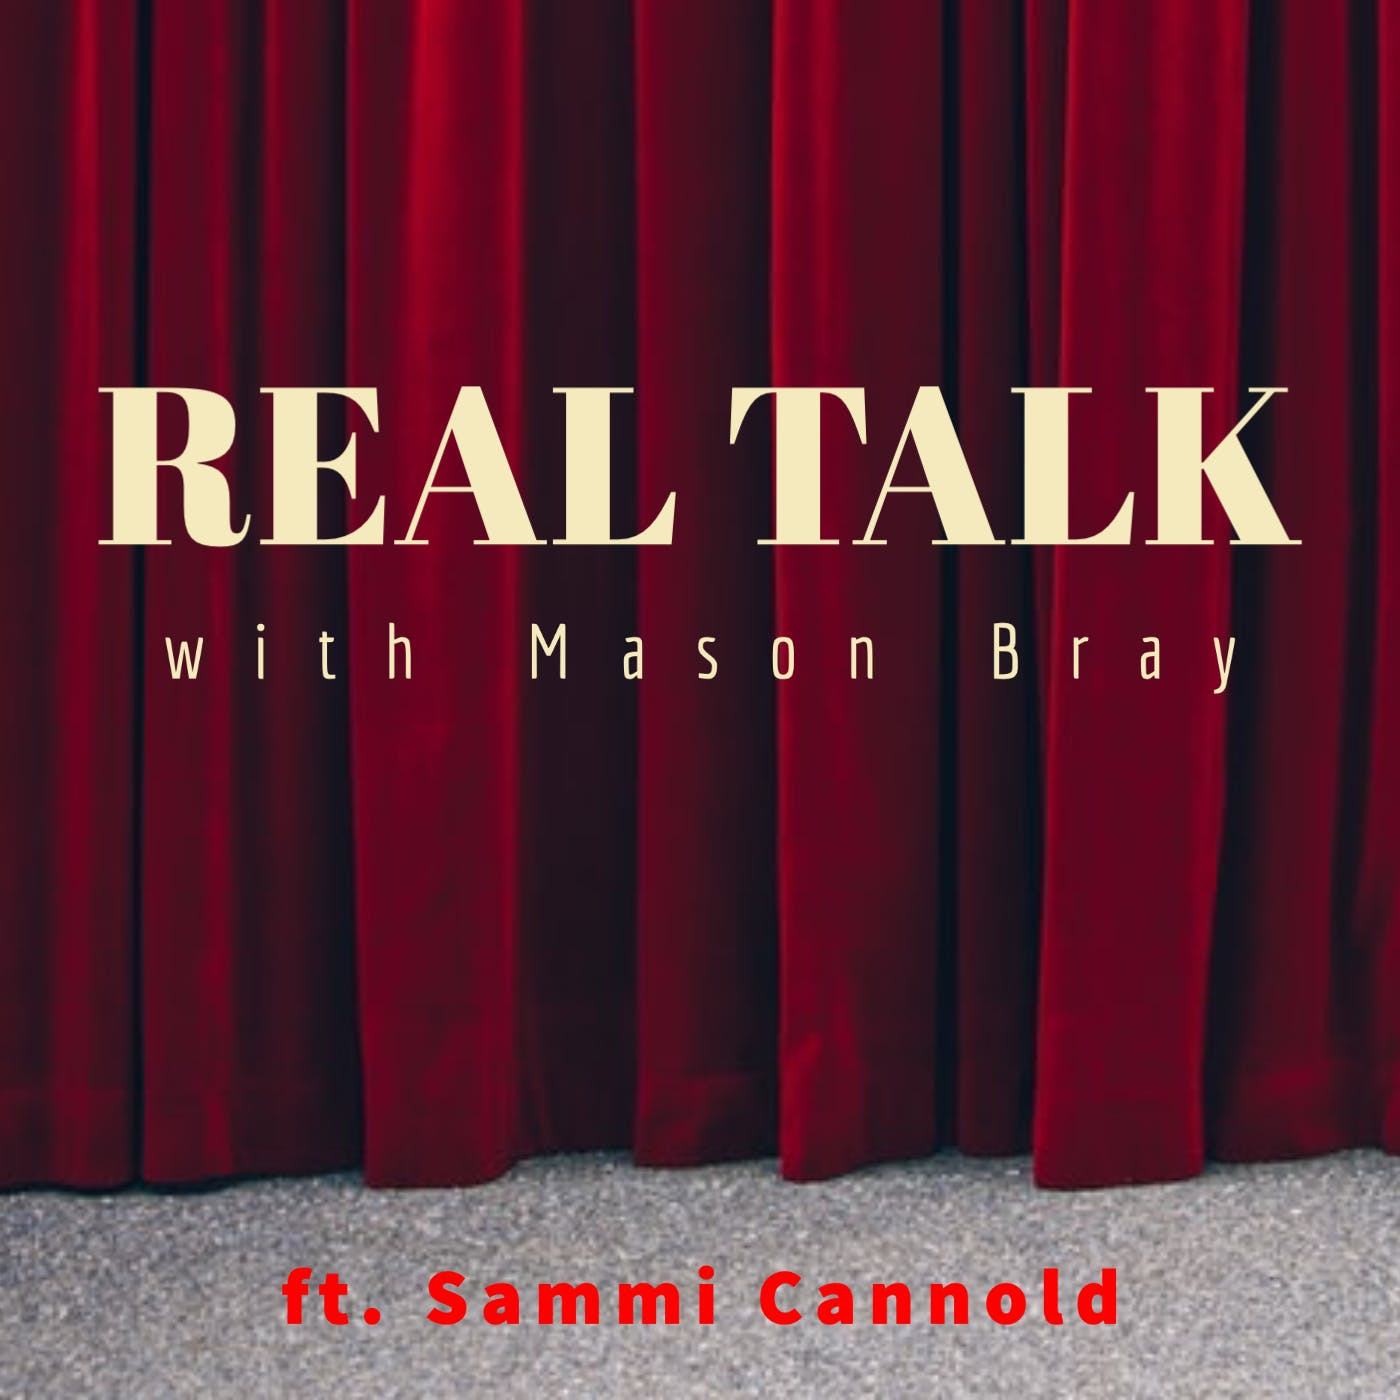 Ep. 508 - BROADWAY TALKS with a Director - Sammi Cannold